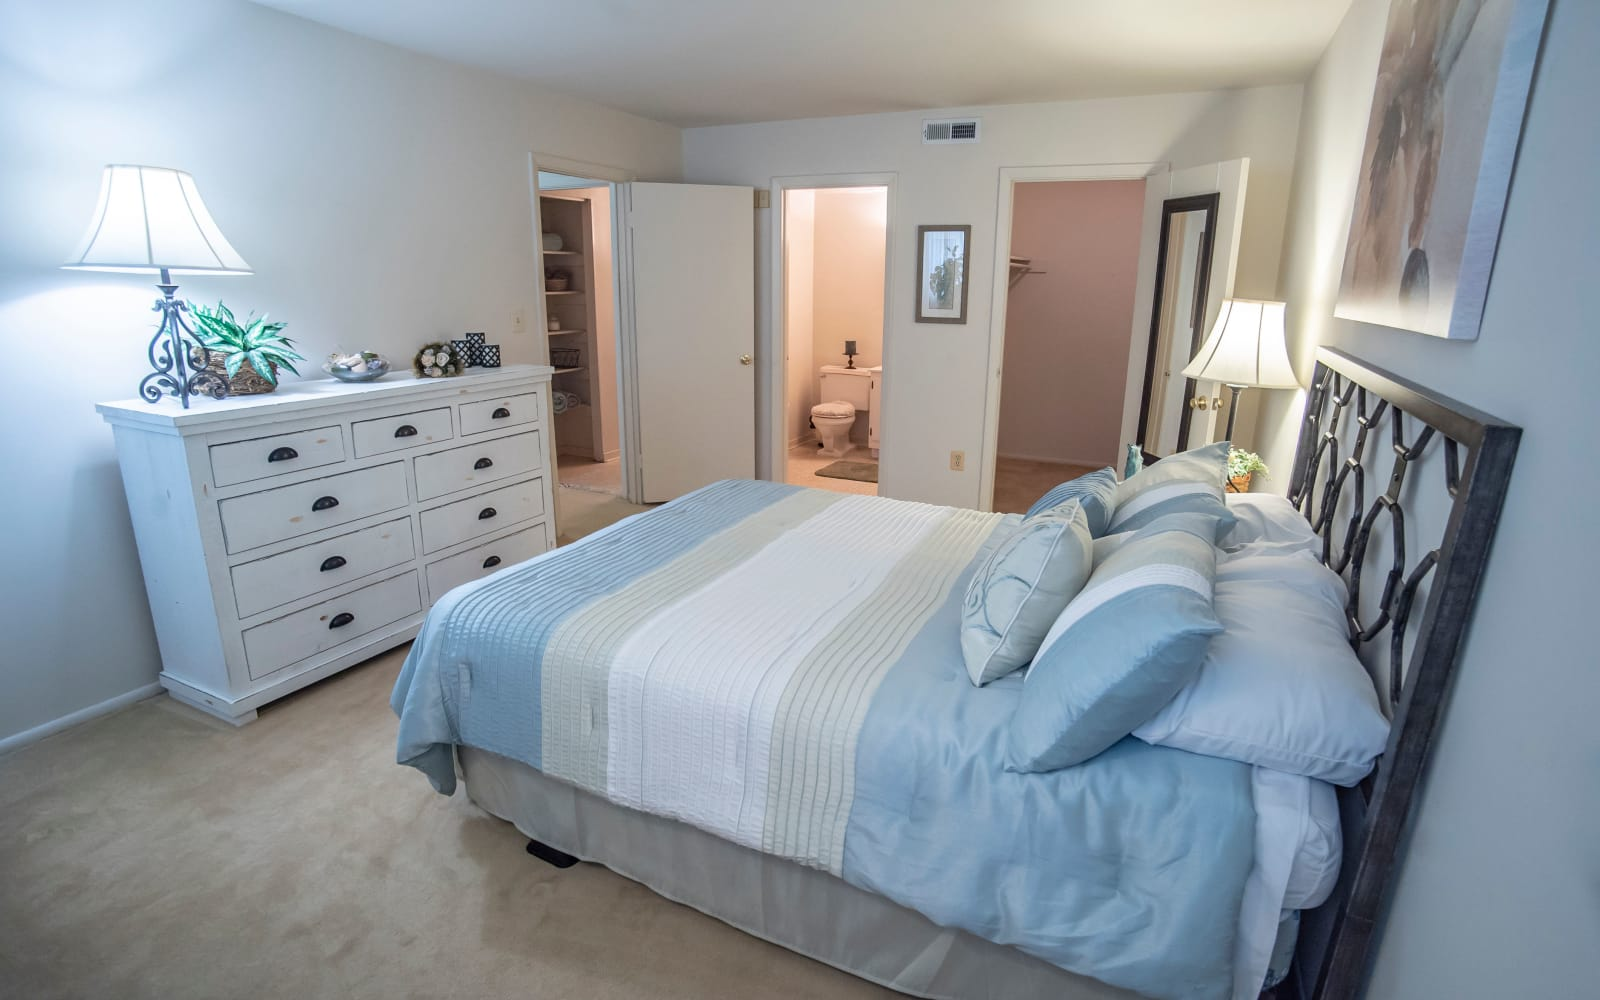 Single bedroom with a walk-in closet and bathroom at Hunt Club Apartments in Cockeysville, Maryland